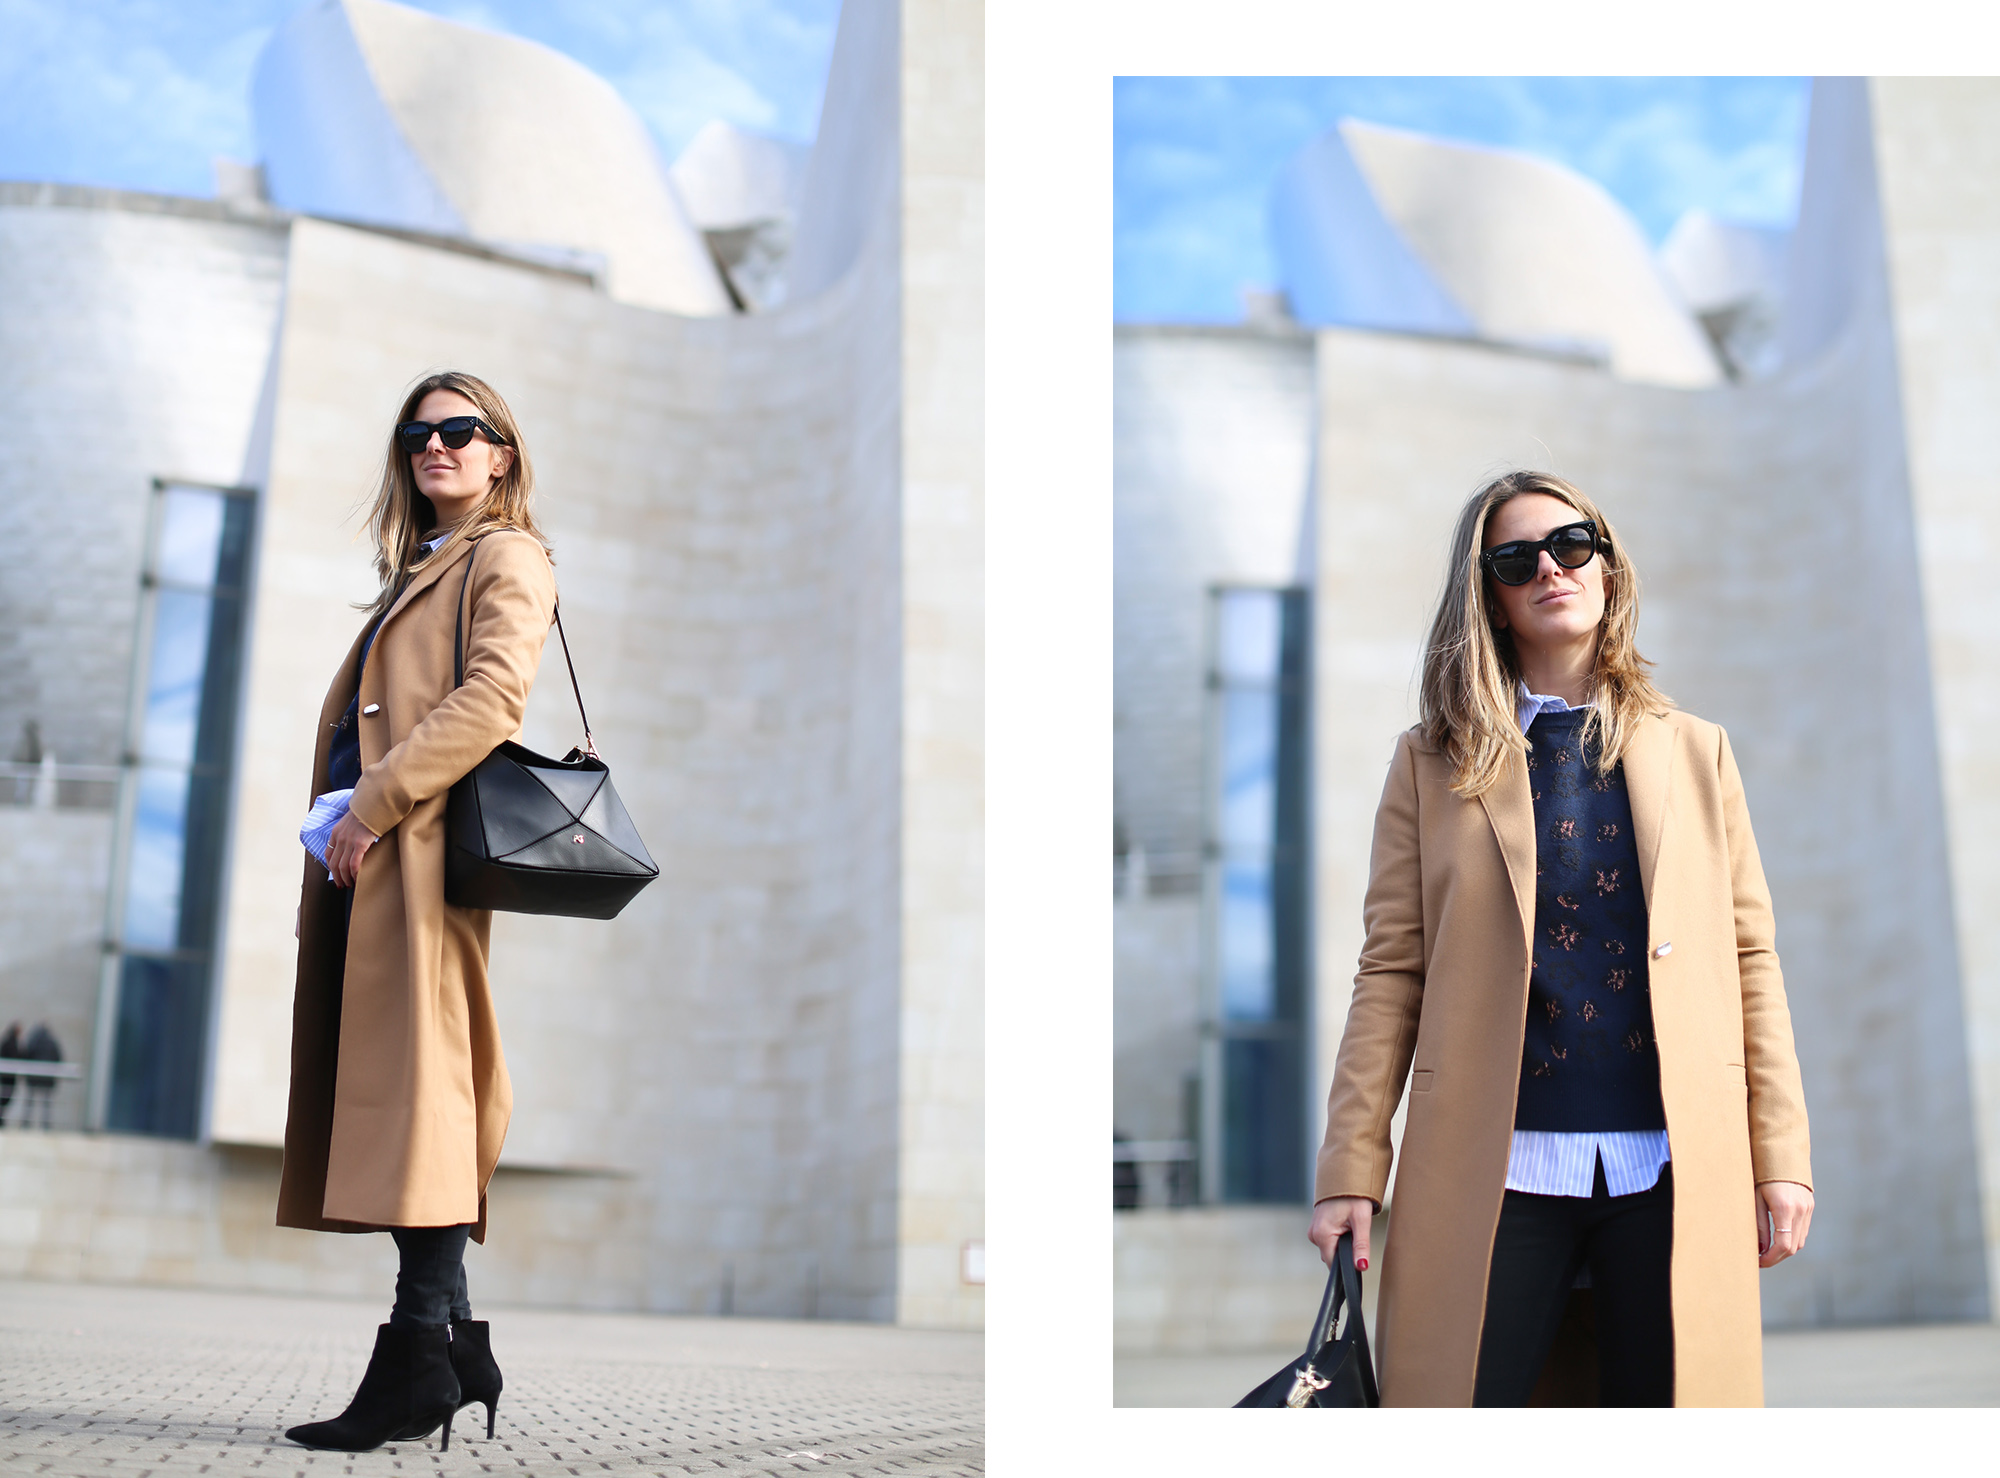 Clochet_streetstyle_fashionblogger_andotherstoriesbeigelongwoolcoat_&otherstoriessuedeankleboots-12